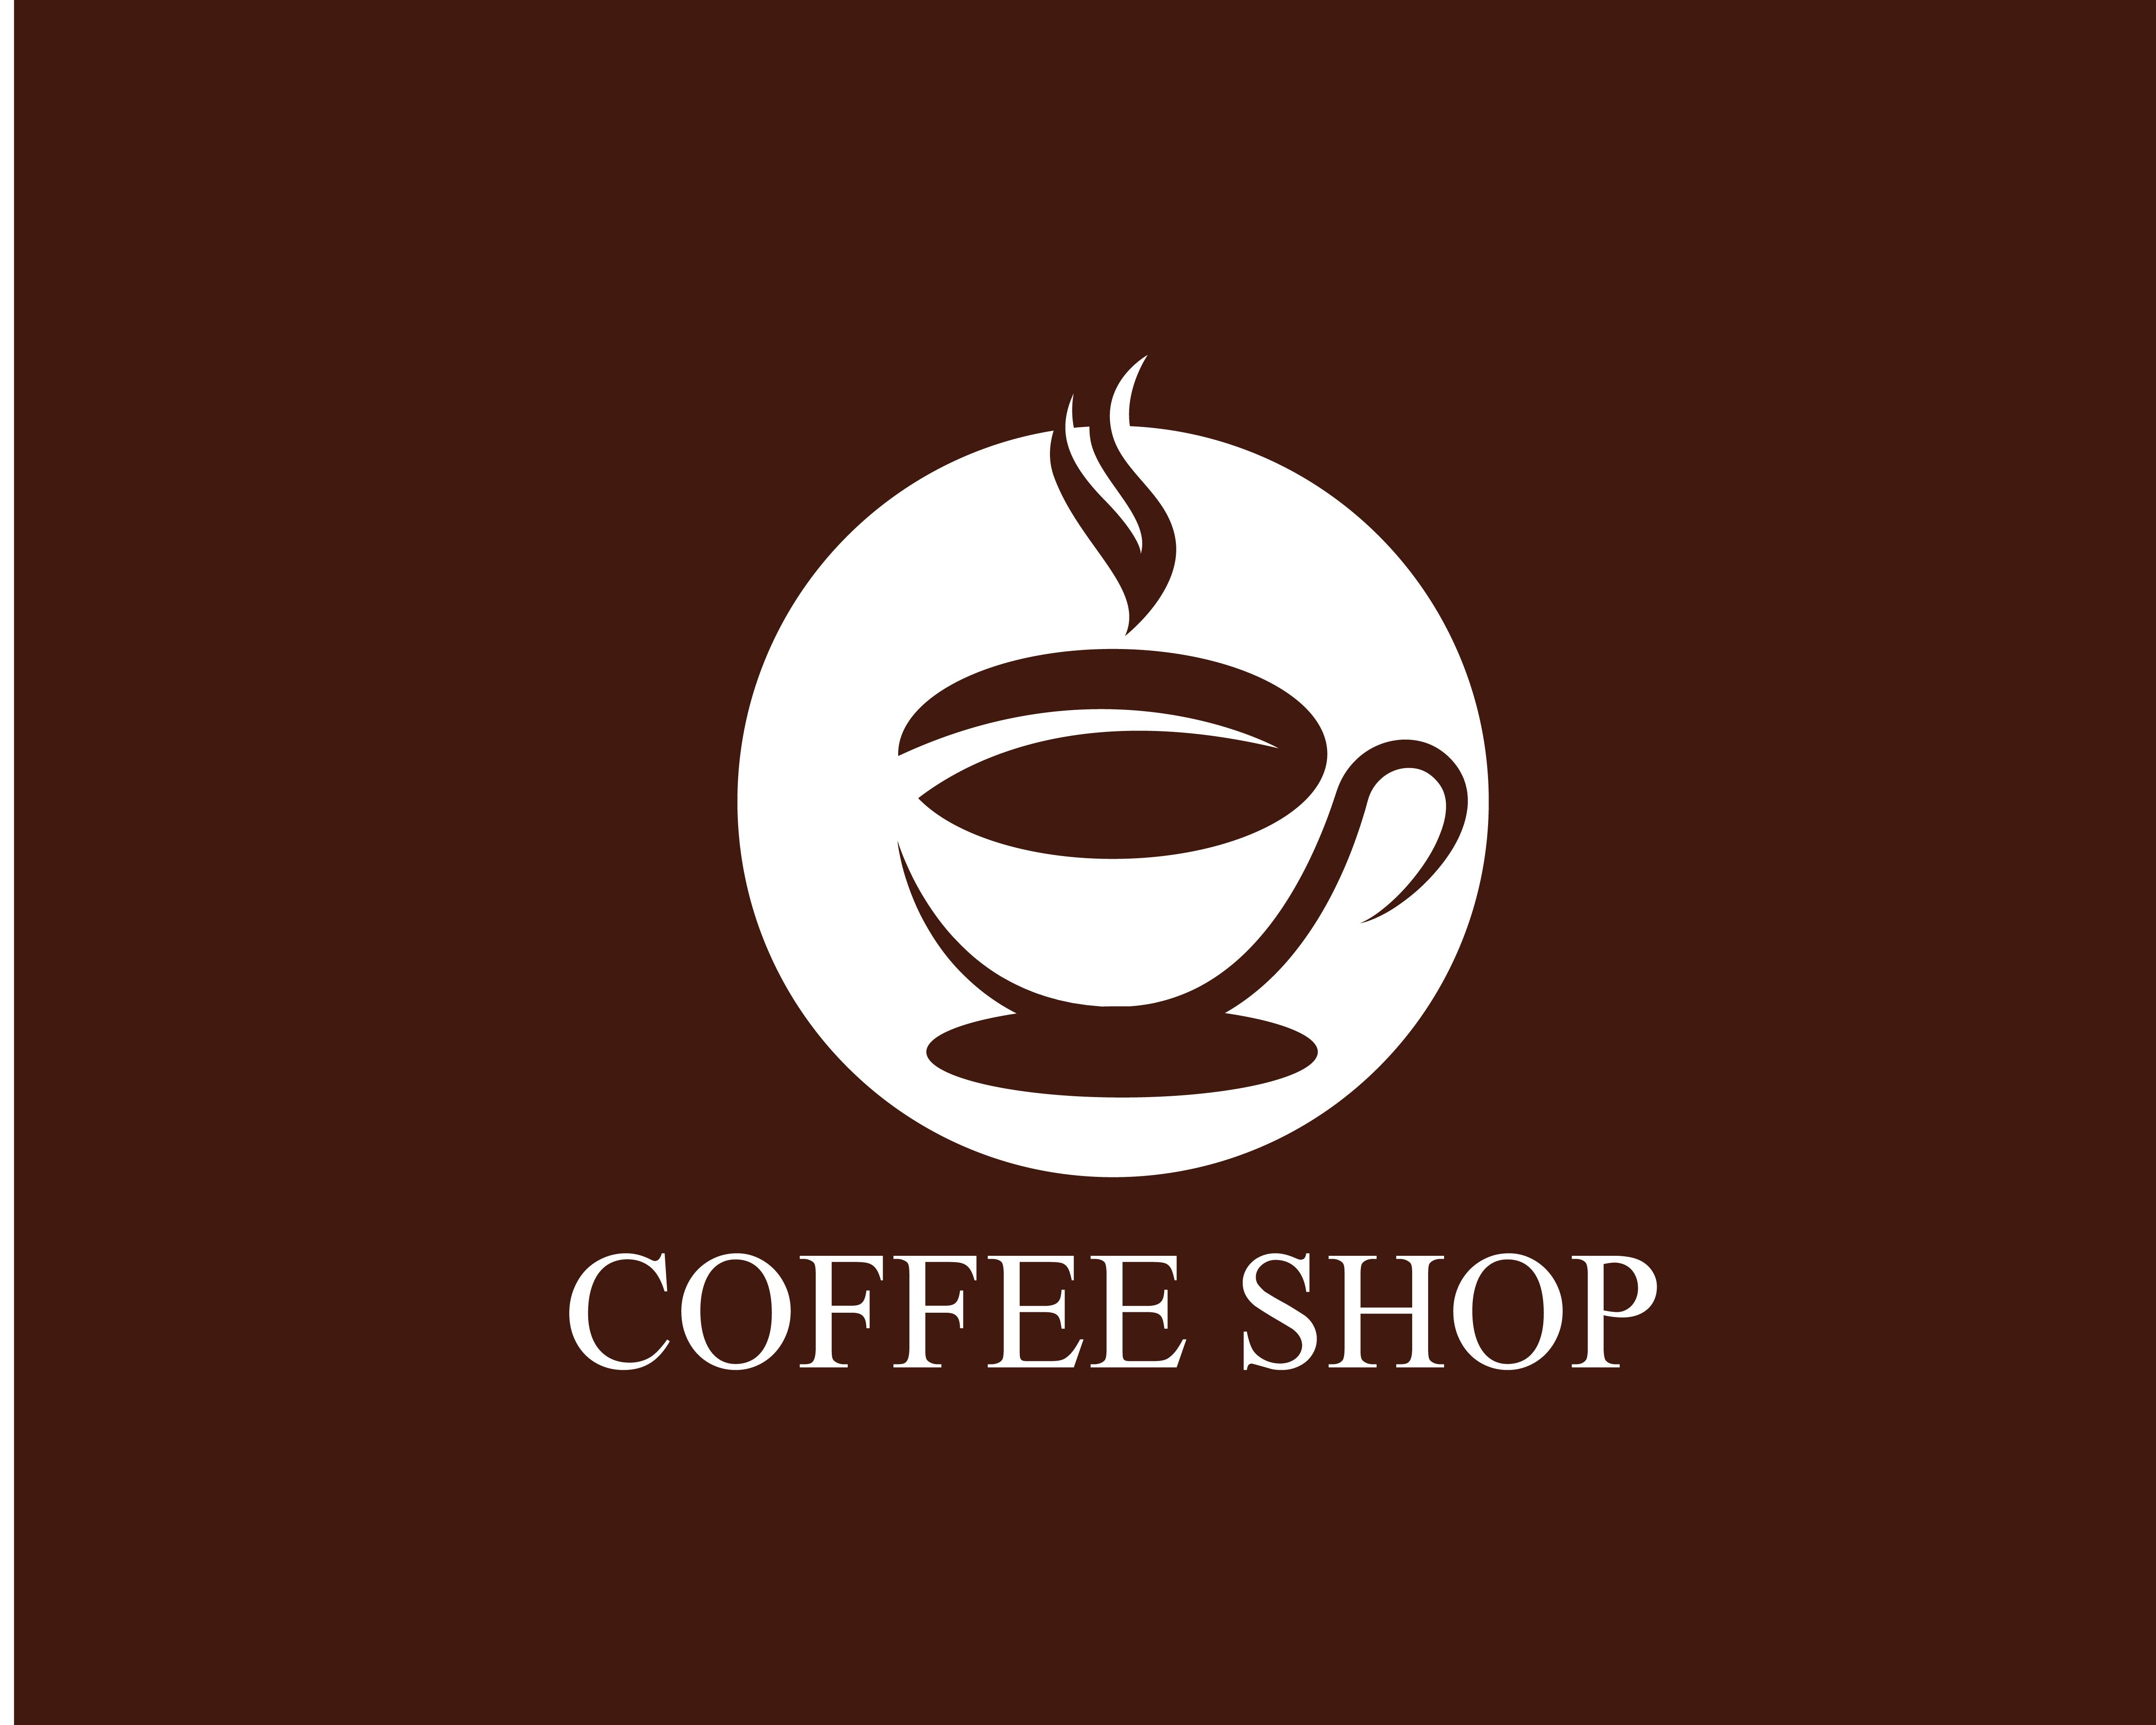 Coffee cup Logo Template - Download Free Vectors, Clipart ...